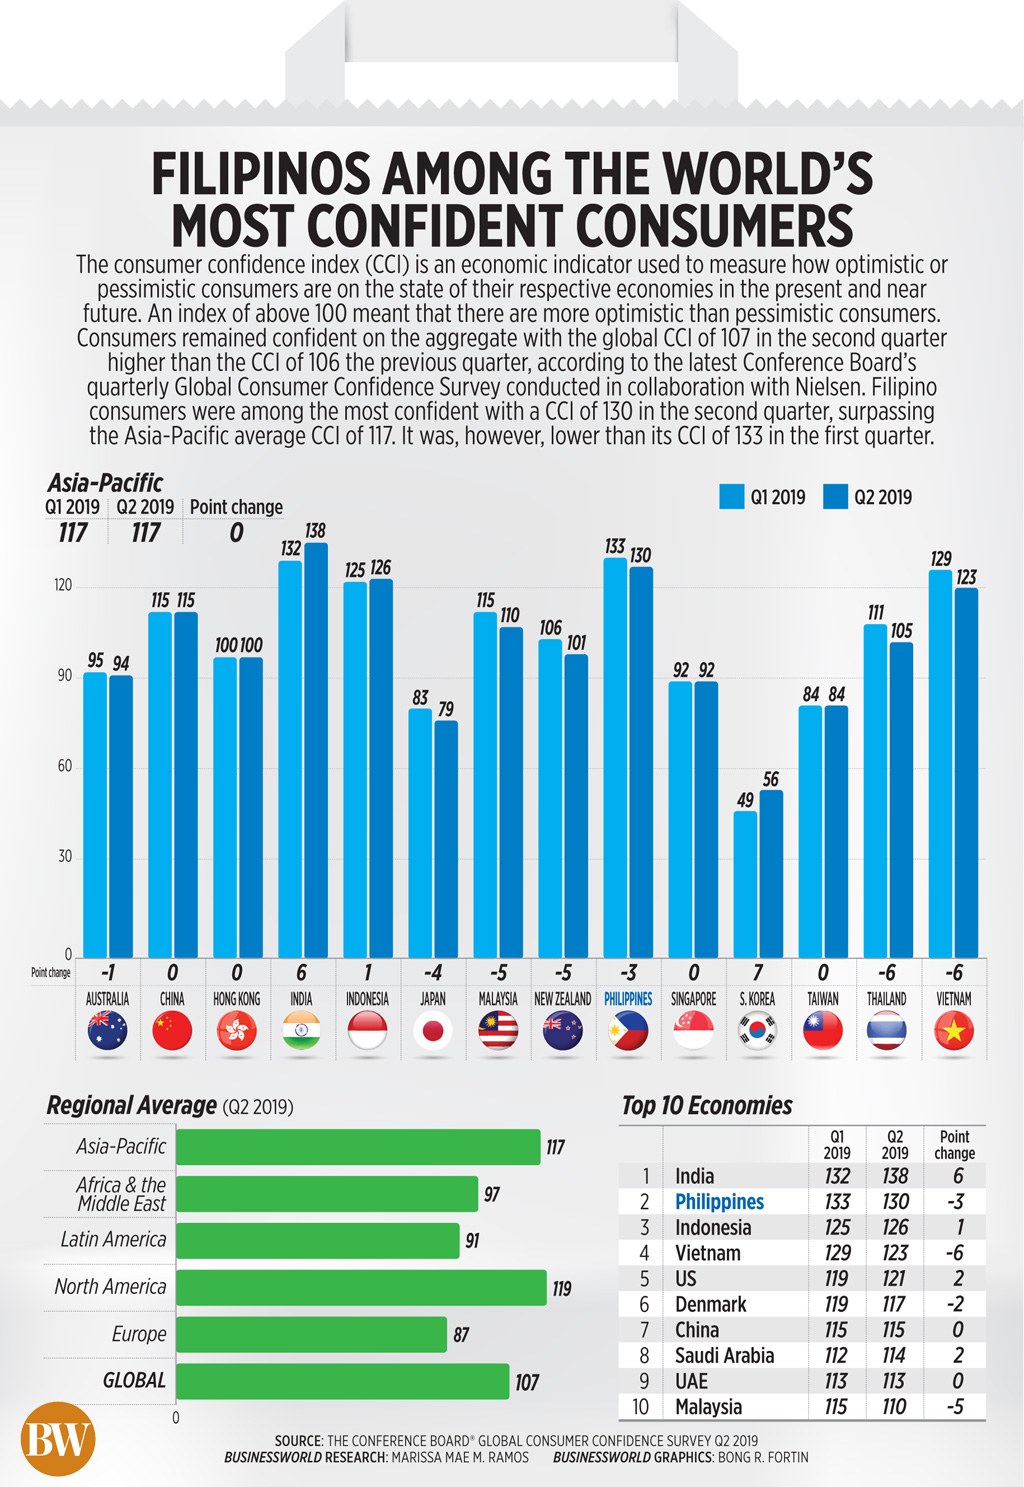 Filipinos among the world's most confident consumers